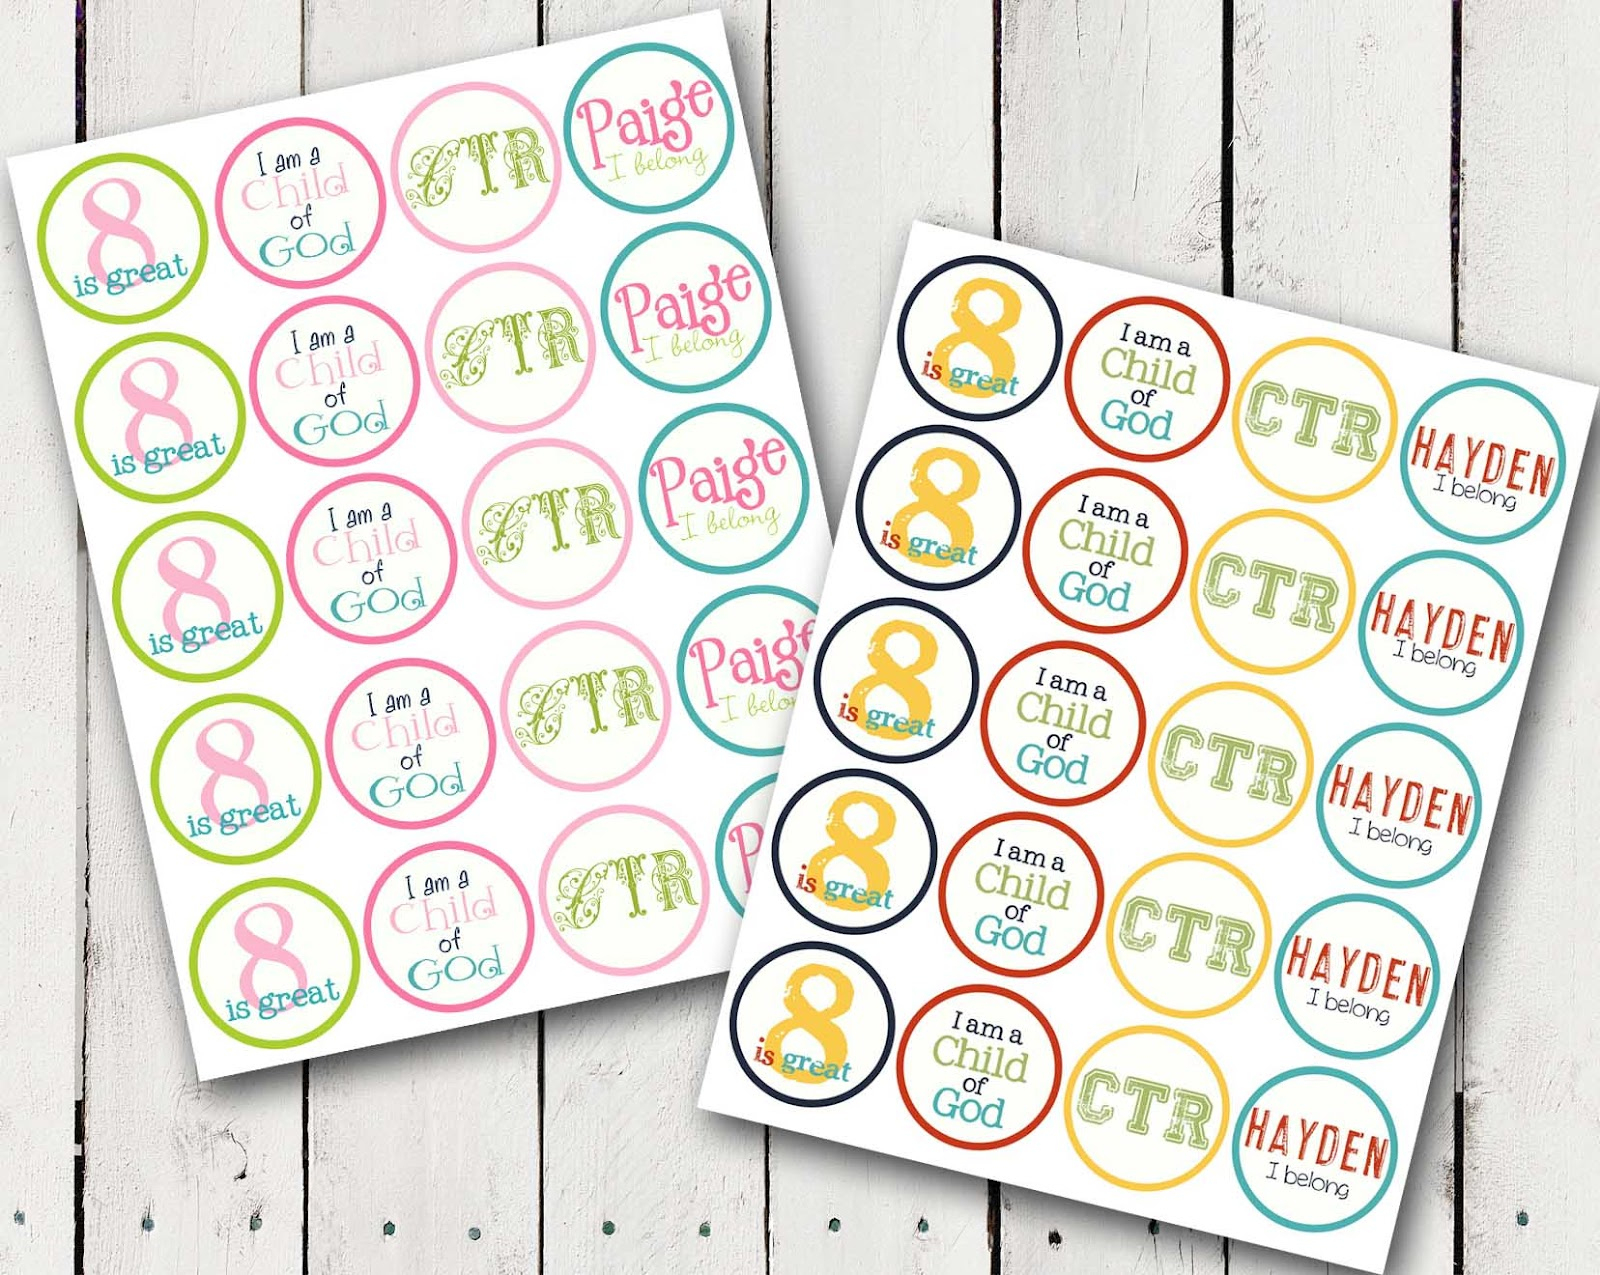 A Pocket Full Of Lds Prints: Ctr Cupcake Toppers - Free Diy Printable - Baptism Cupcake Toppers Printable Free